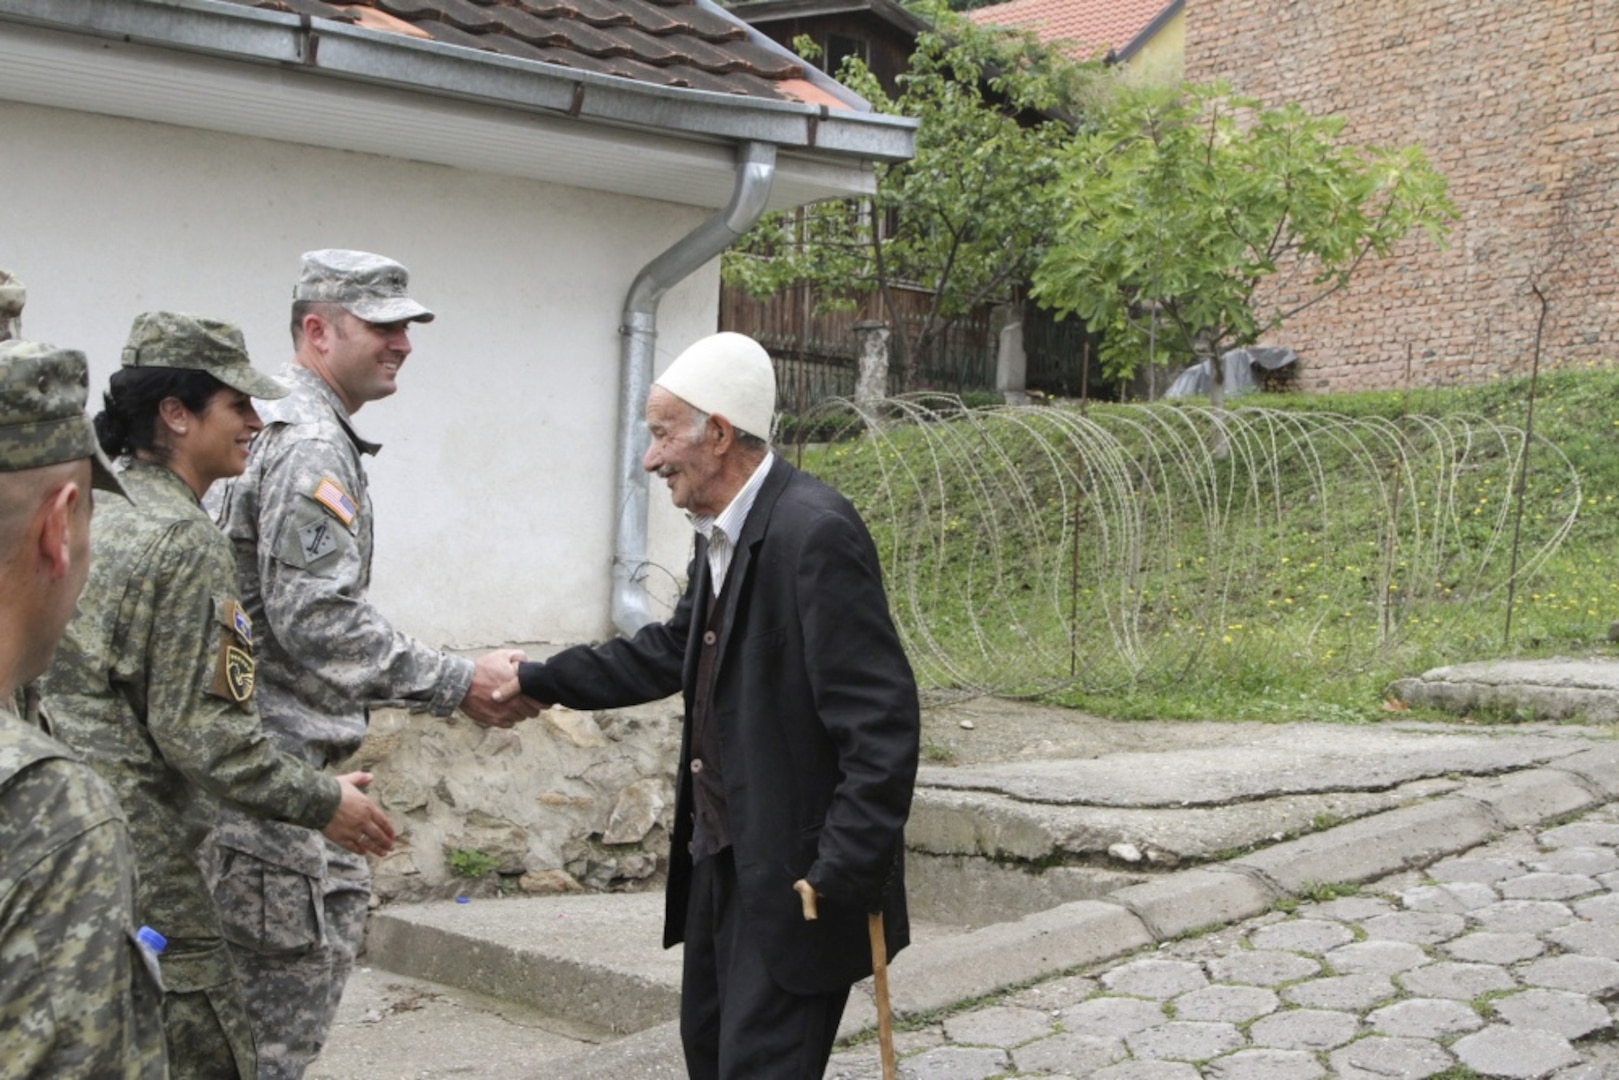 Sgt. 1st Class Obadiah Meyers (middle), Iowa National Guard (IANG) soldier from the 67th Troop Command, shakes hands with a resident of Prizren, Kosovo (right) while on a tour of the city during the IANG staff ride on Monday, September 12, 2016. Staff Sgt. Valbona Kerolli (left), nurse with the Kosovo Security Force (KSF) Medical Company, prepares to shake hands with the gentleman next. Iowa and the Republic of Kosovo have partnered through the National Guard Bureau State Partnership Program since 2011.